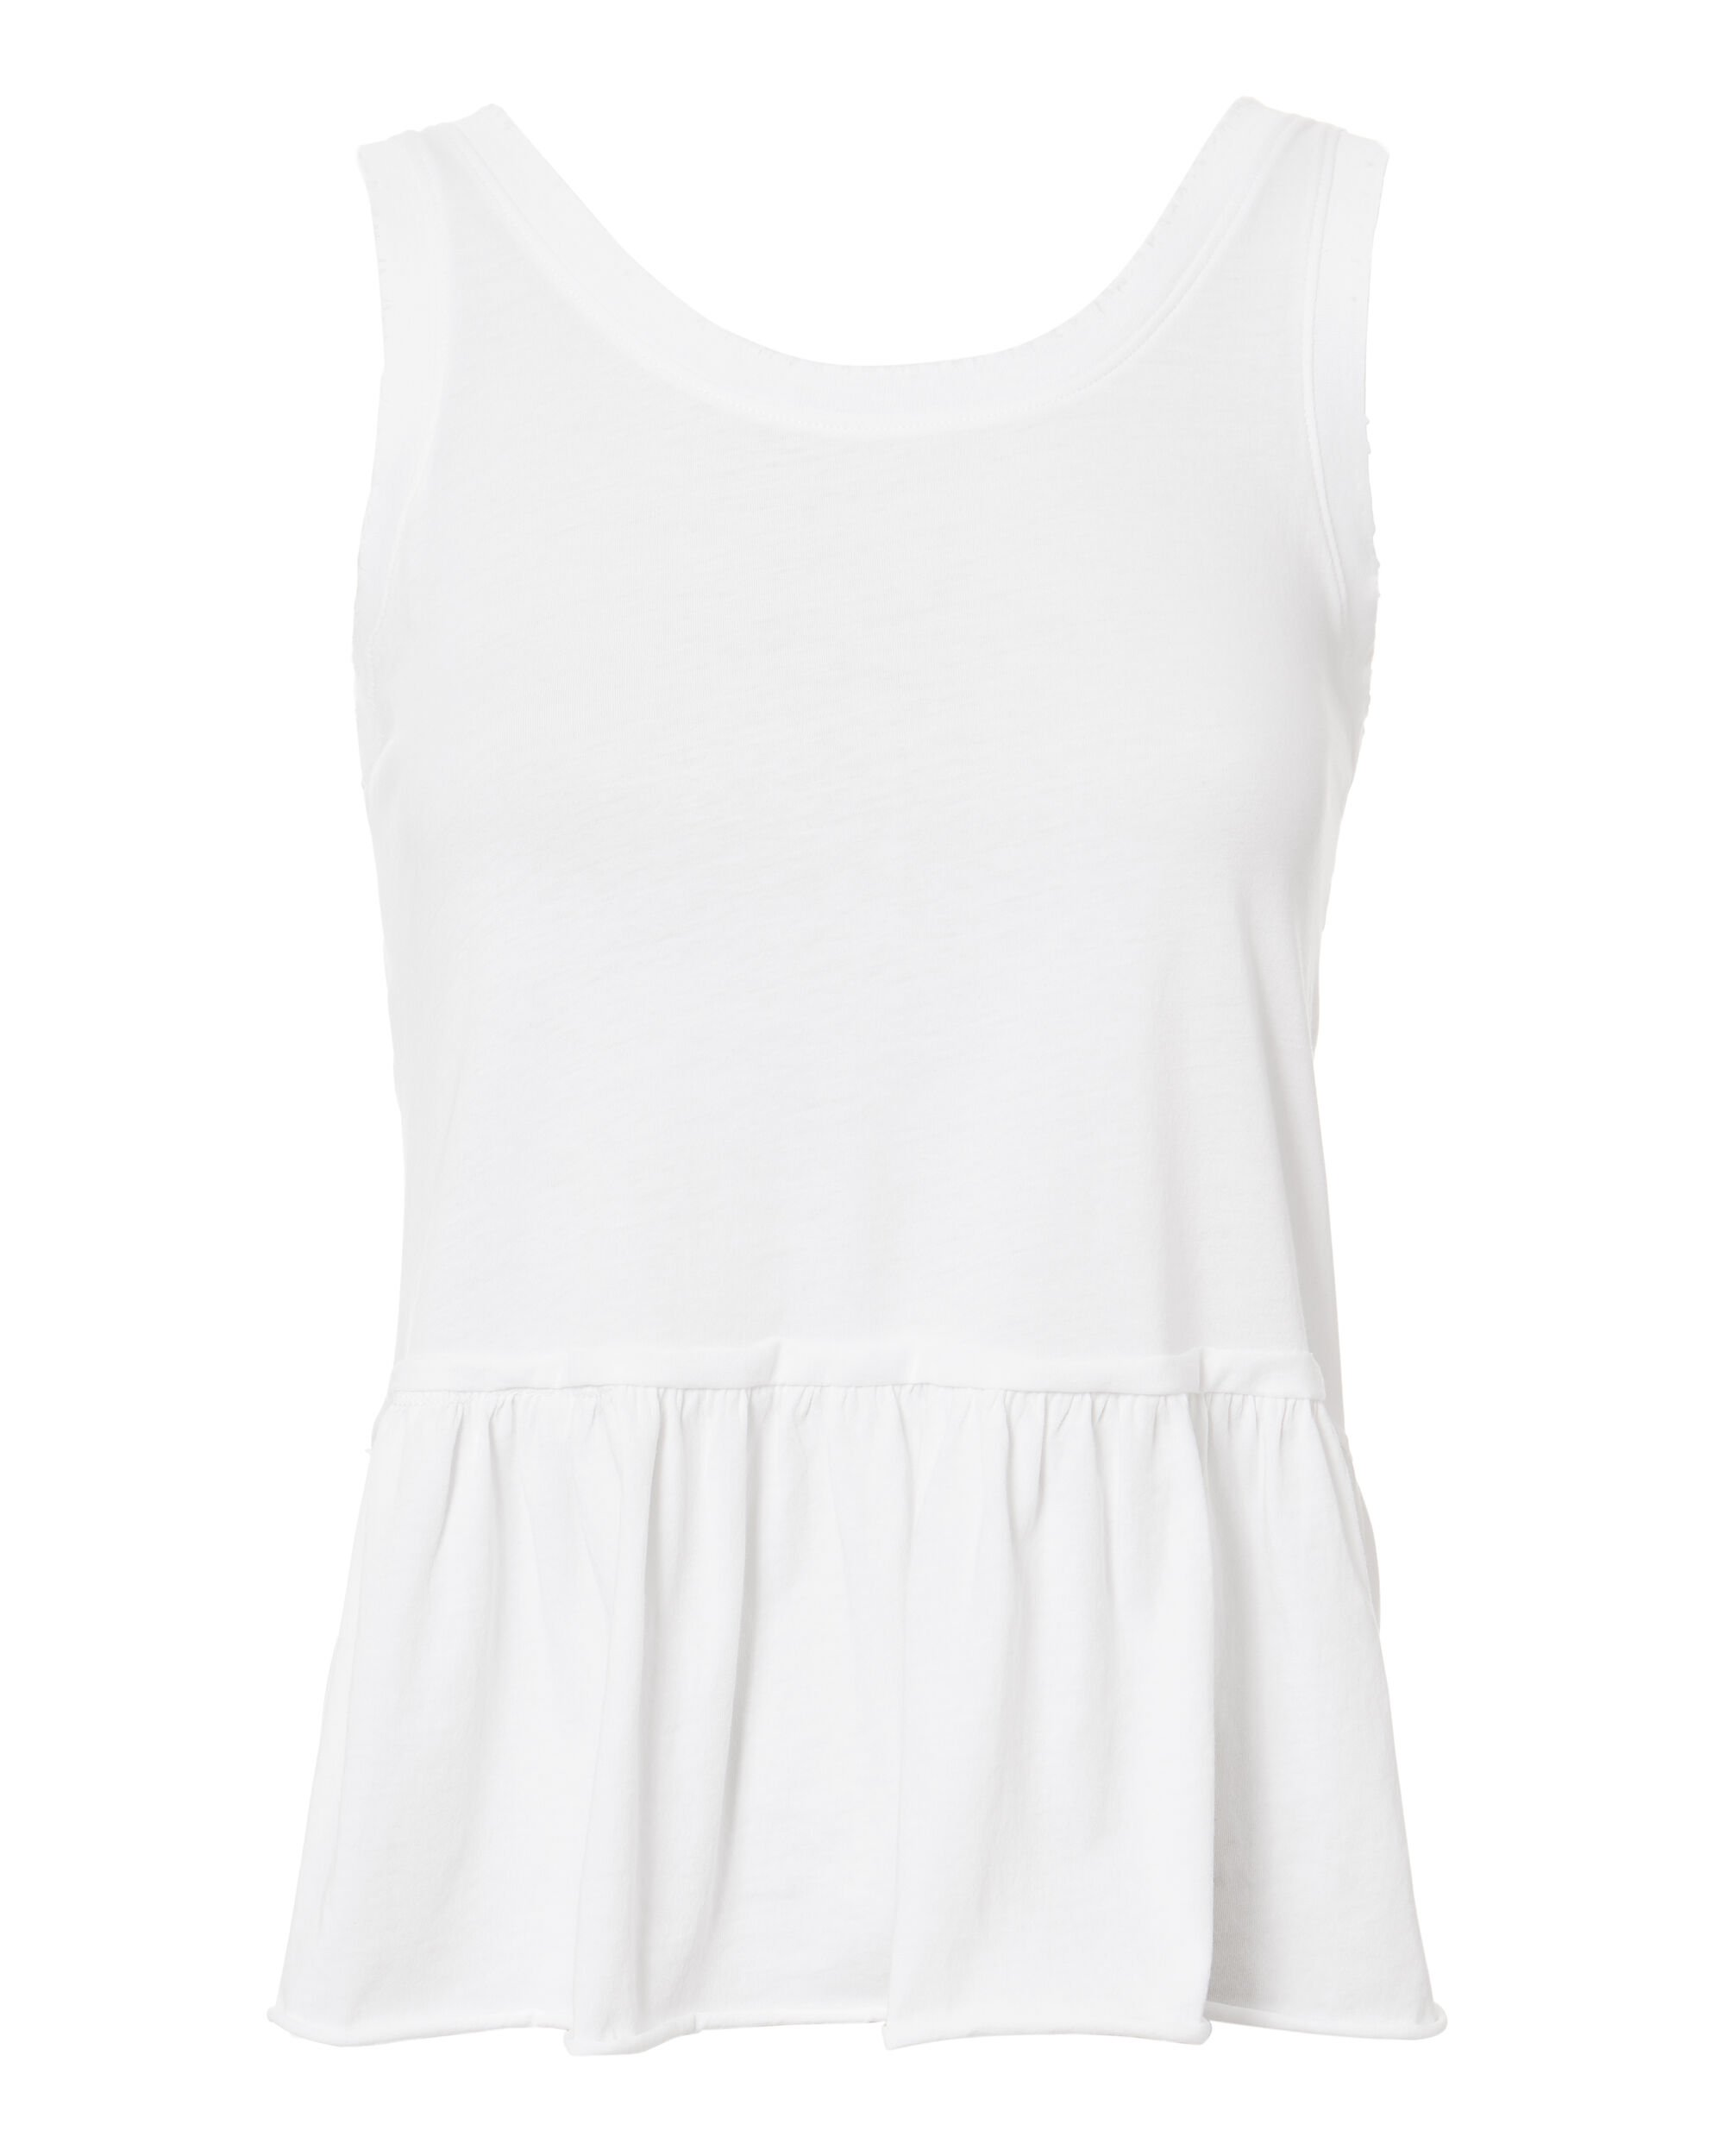 V-Back Ruffle Tank, WHITE, hi-res